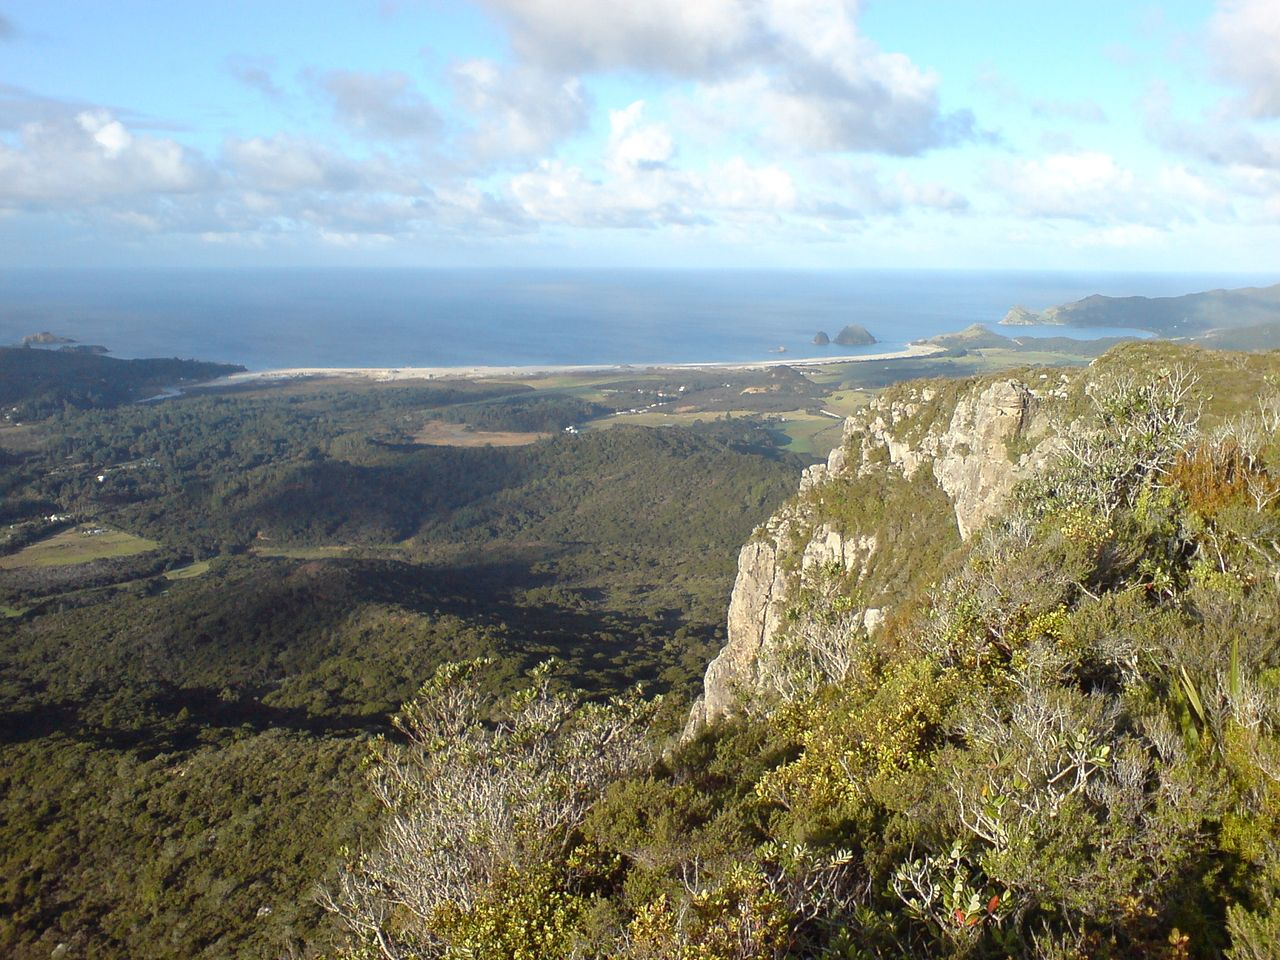 A view over the eastern coast of Great Barrier Island, from a ridge line in the center of the island